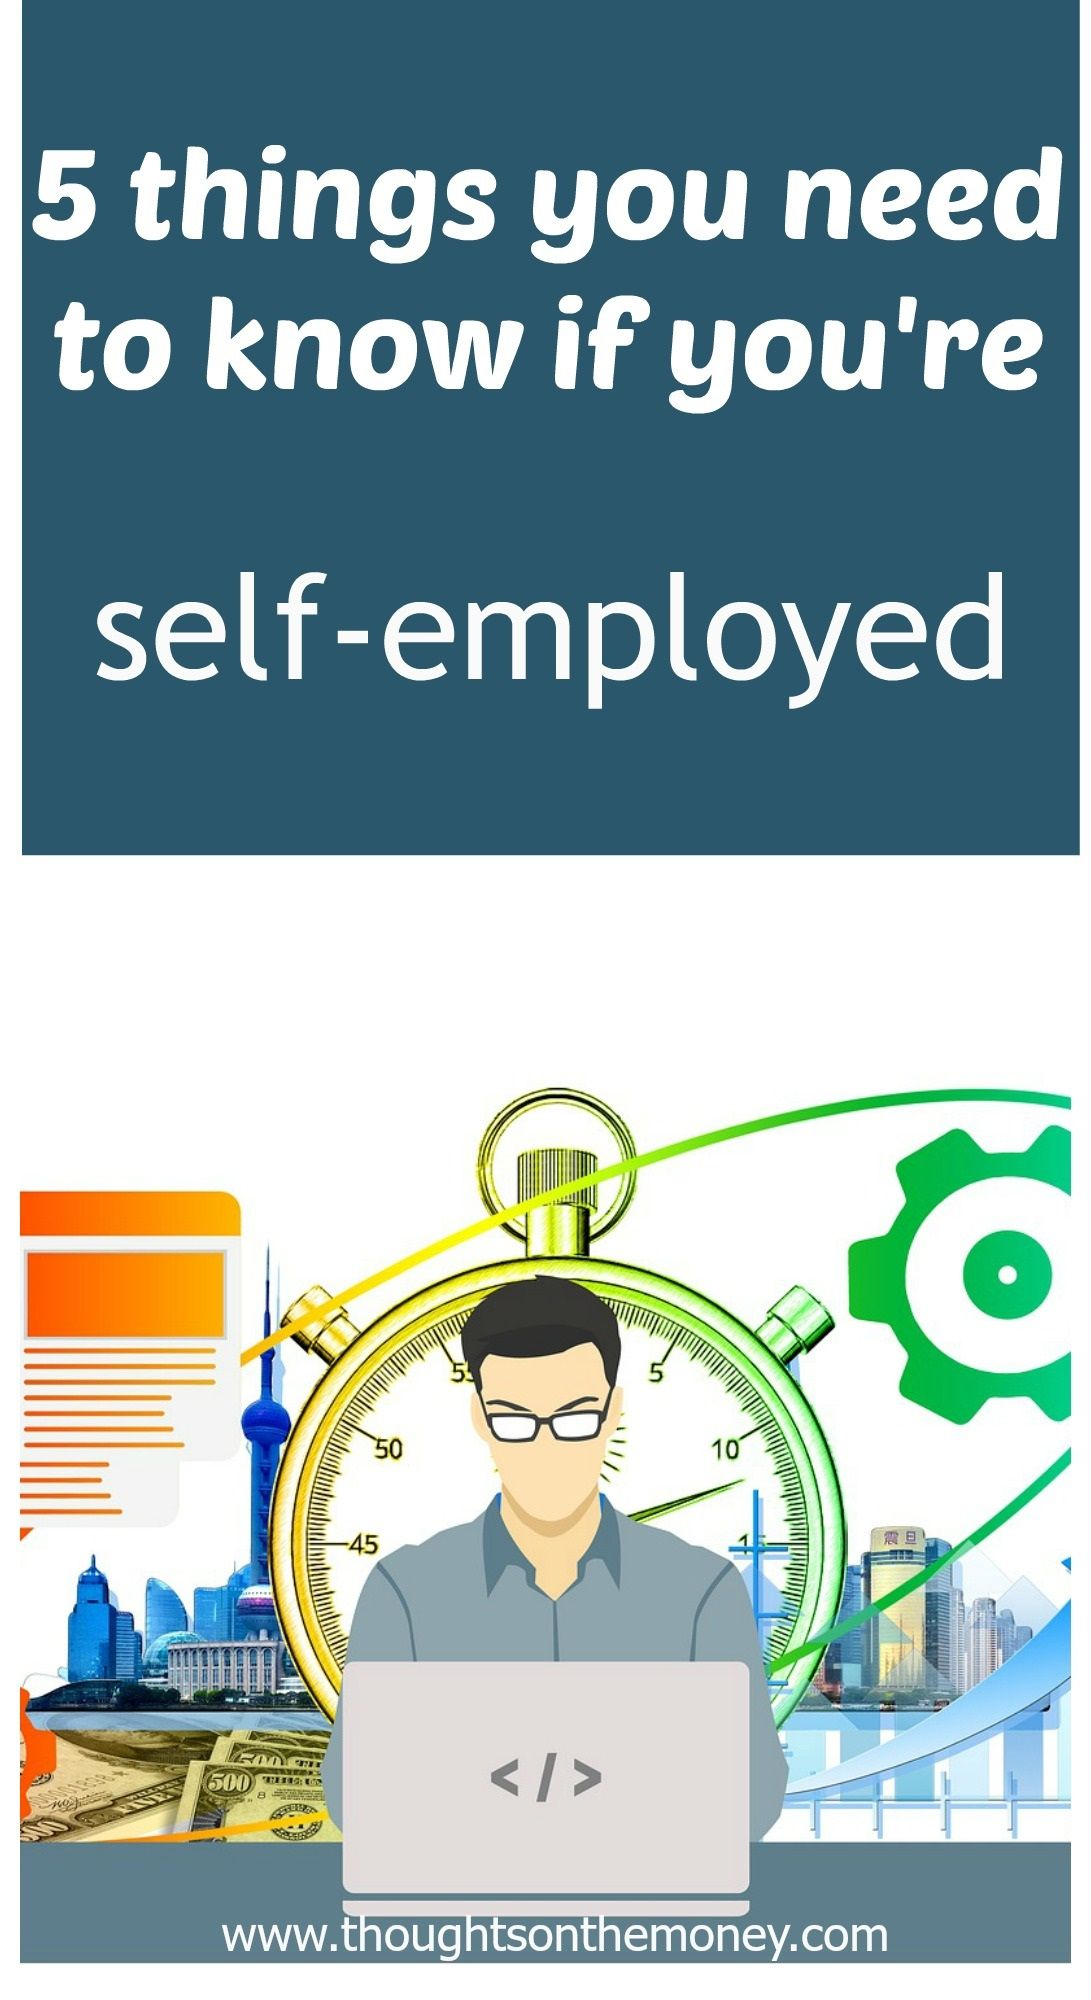 small business selfemployed retirement taxes savings